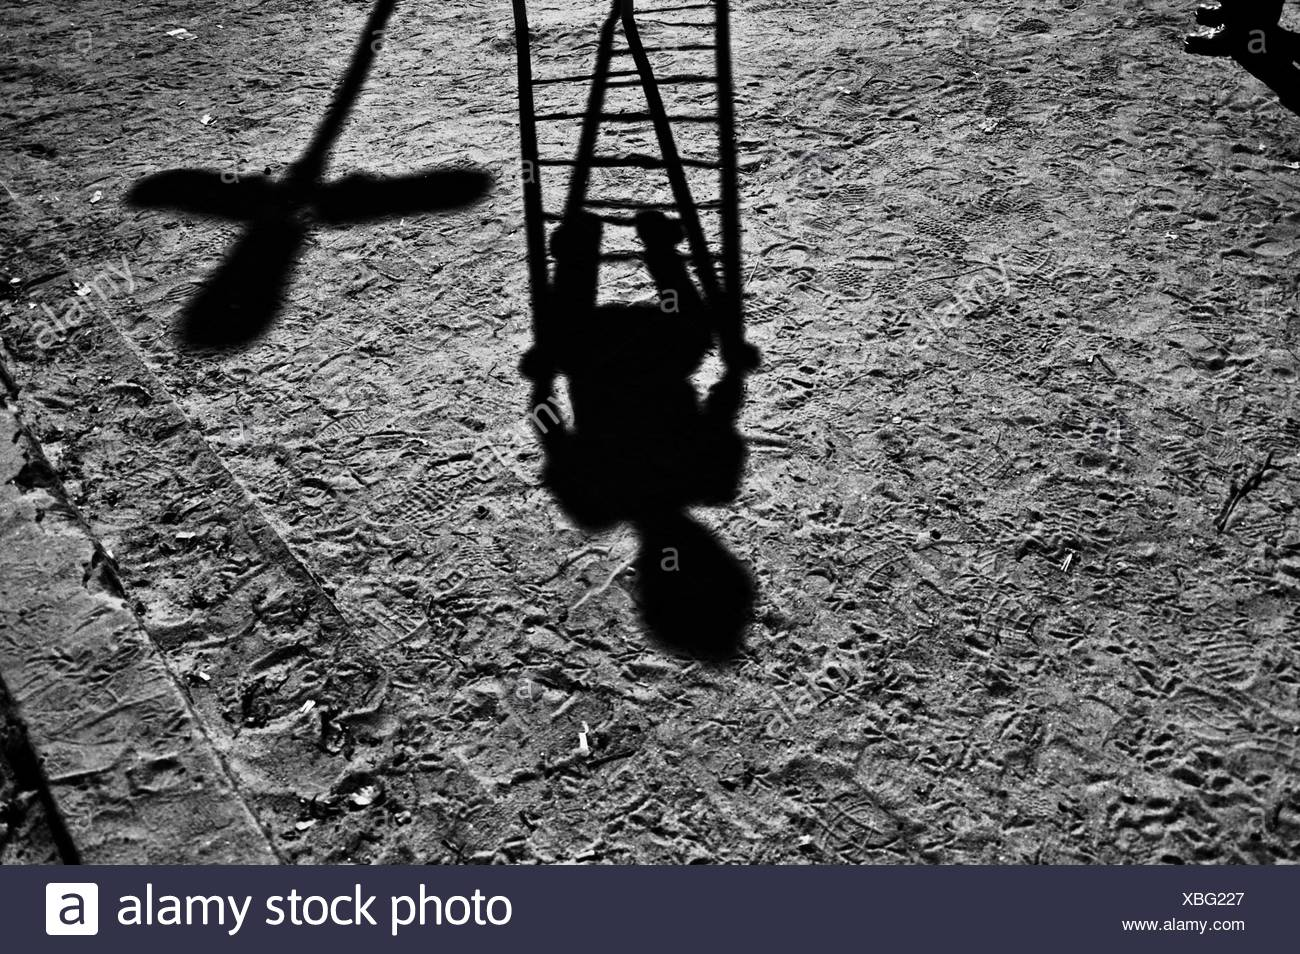 Shadow of a child playing in a playground - Stock Image